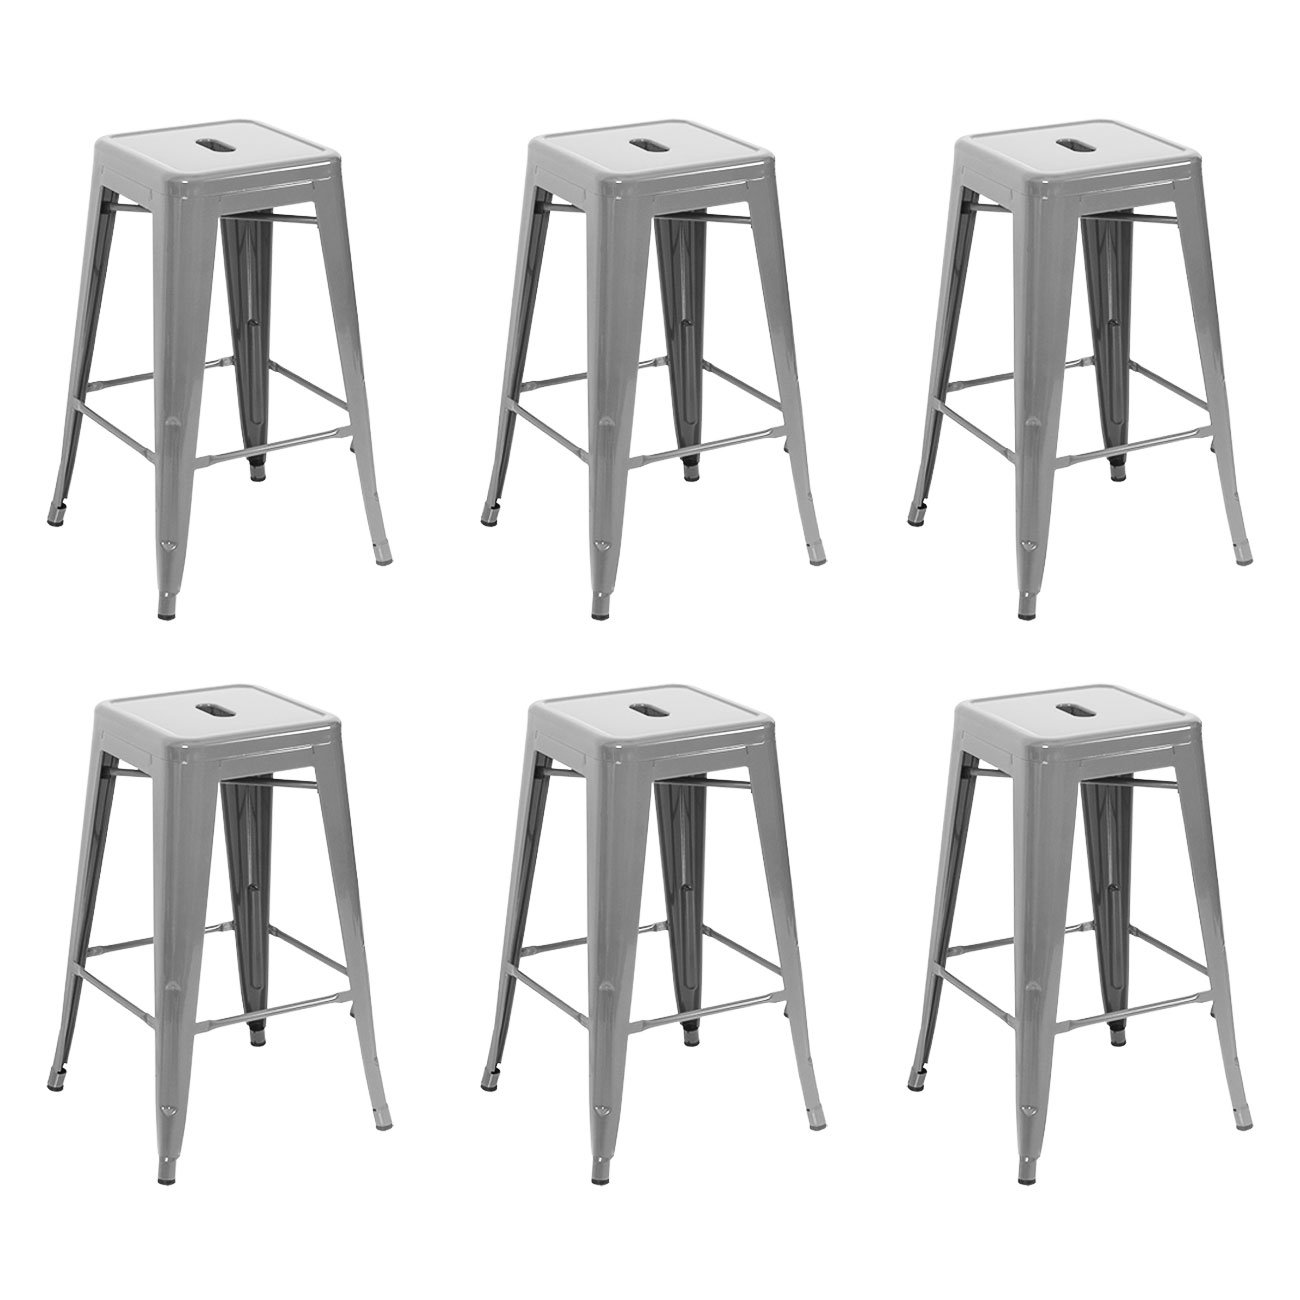 Belleze 26-inch Counter Stools Height Stackable, Silver (Set of 6) by Belleze